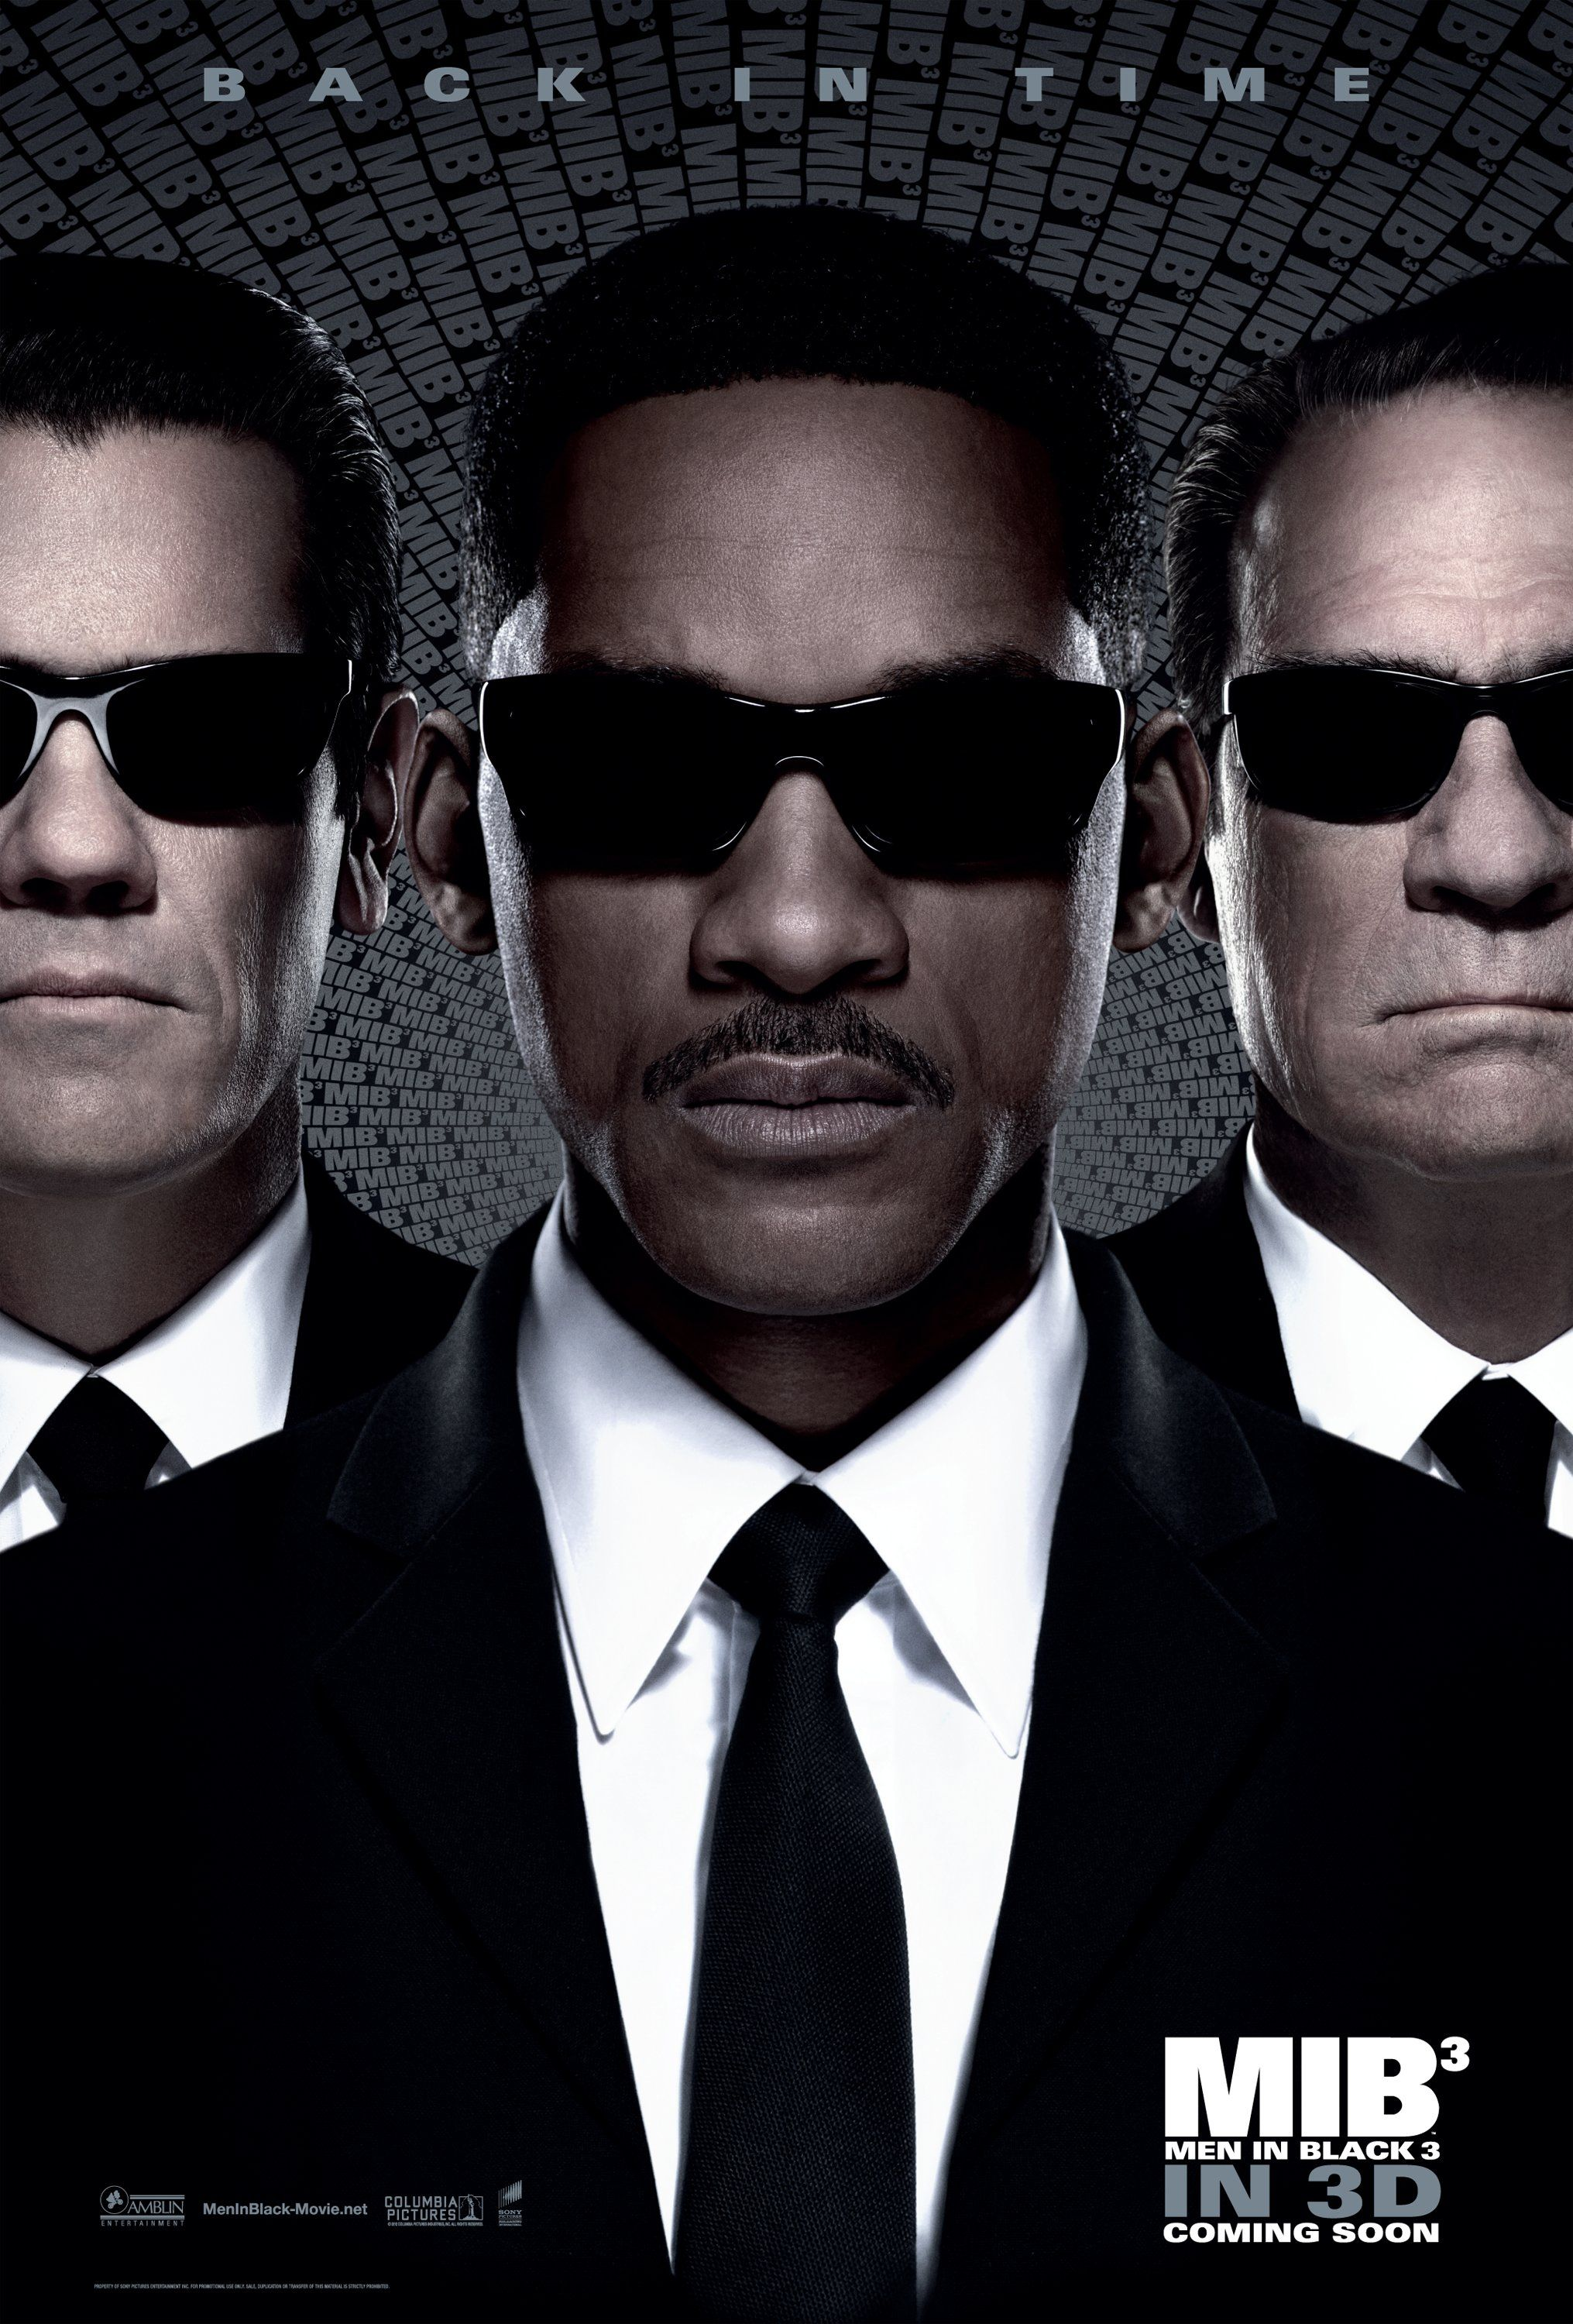 Image result for men in black 3 movie poster